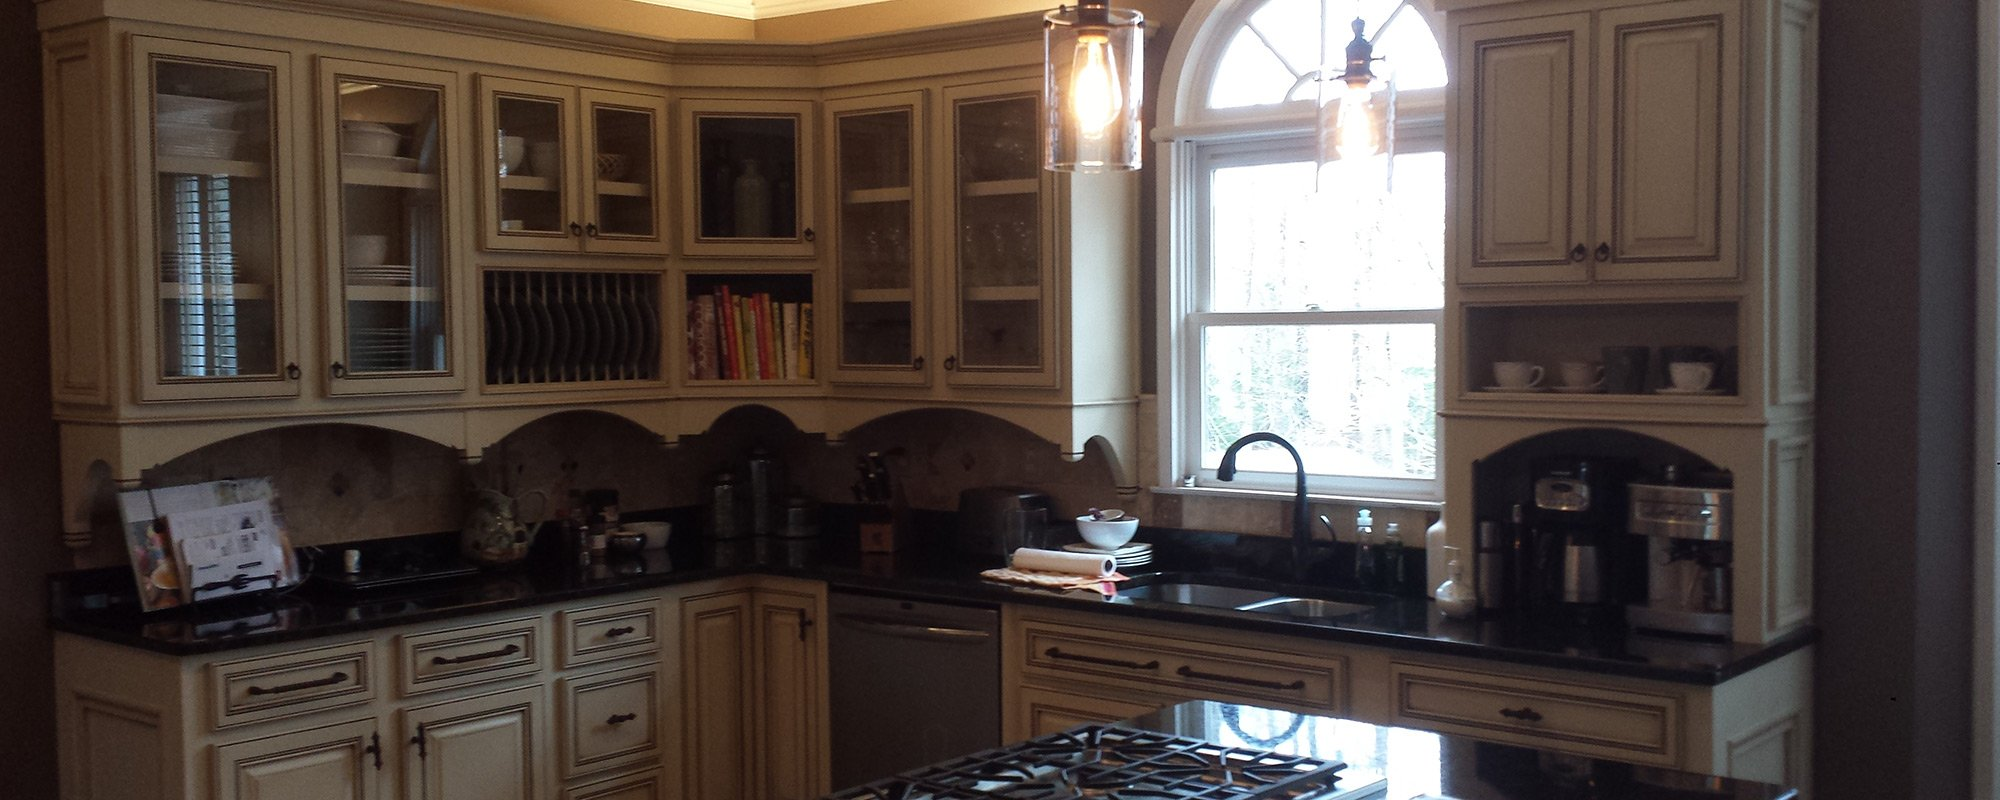 custom kitchen cabinets prices best price custom cabinets cabinet refacing atlanta ga 14366